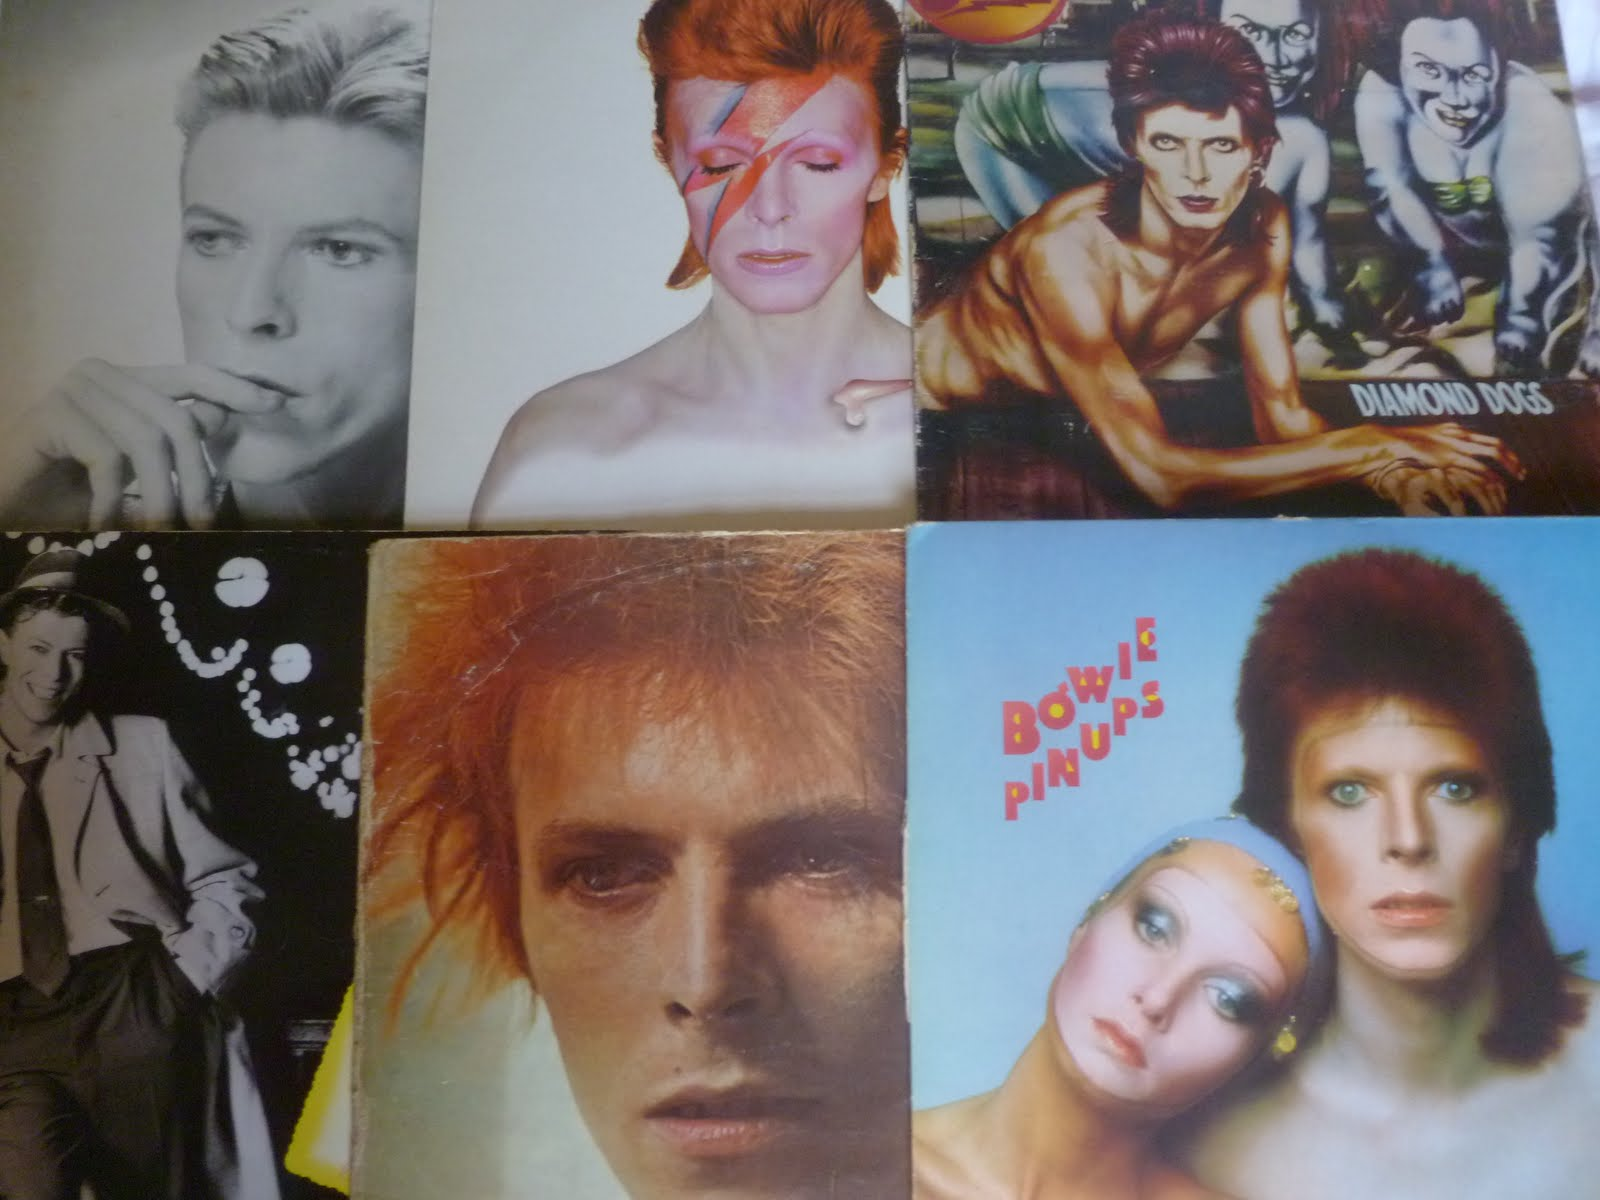 Fredbutlerstyle Sat 14th Jan David Bowie And Mick Ronson